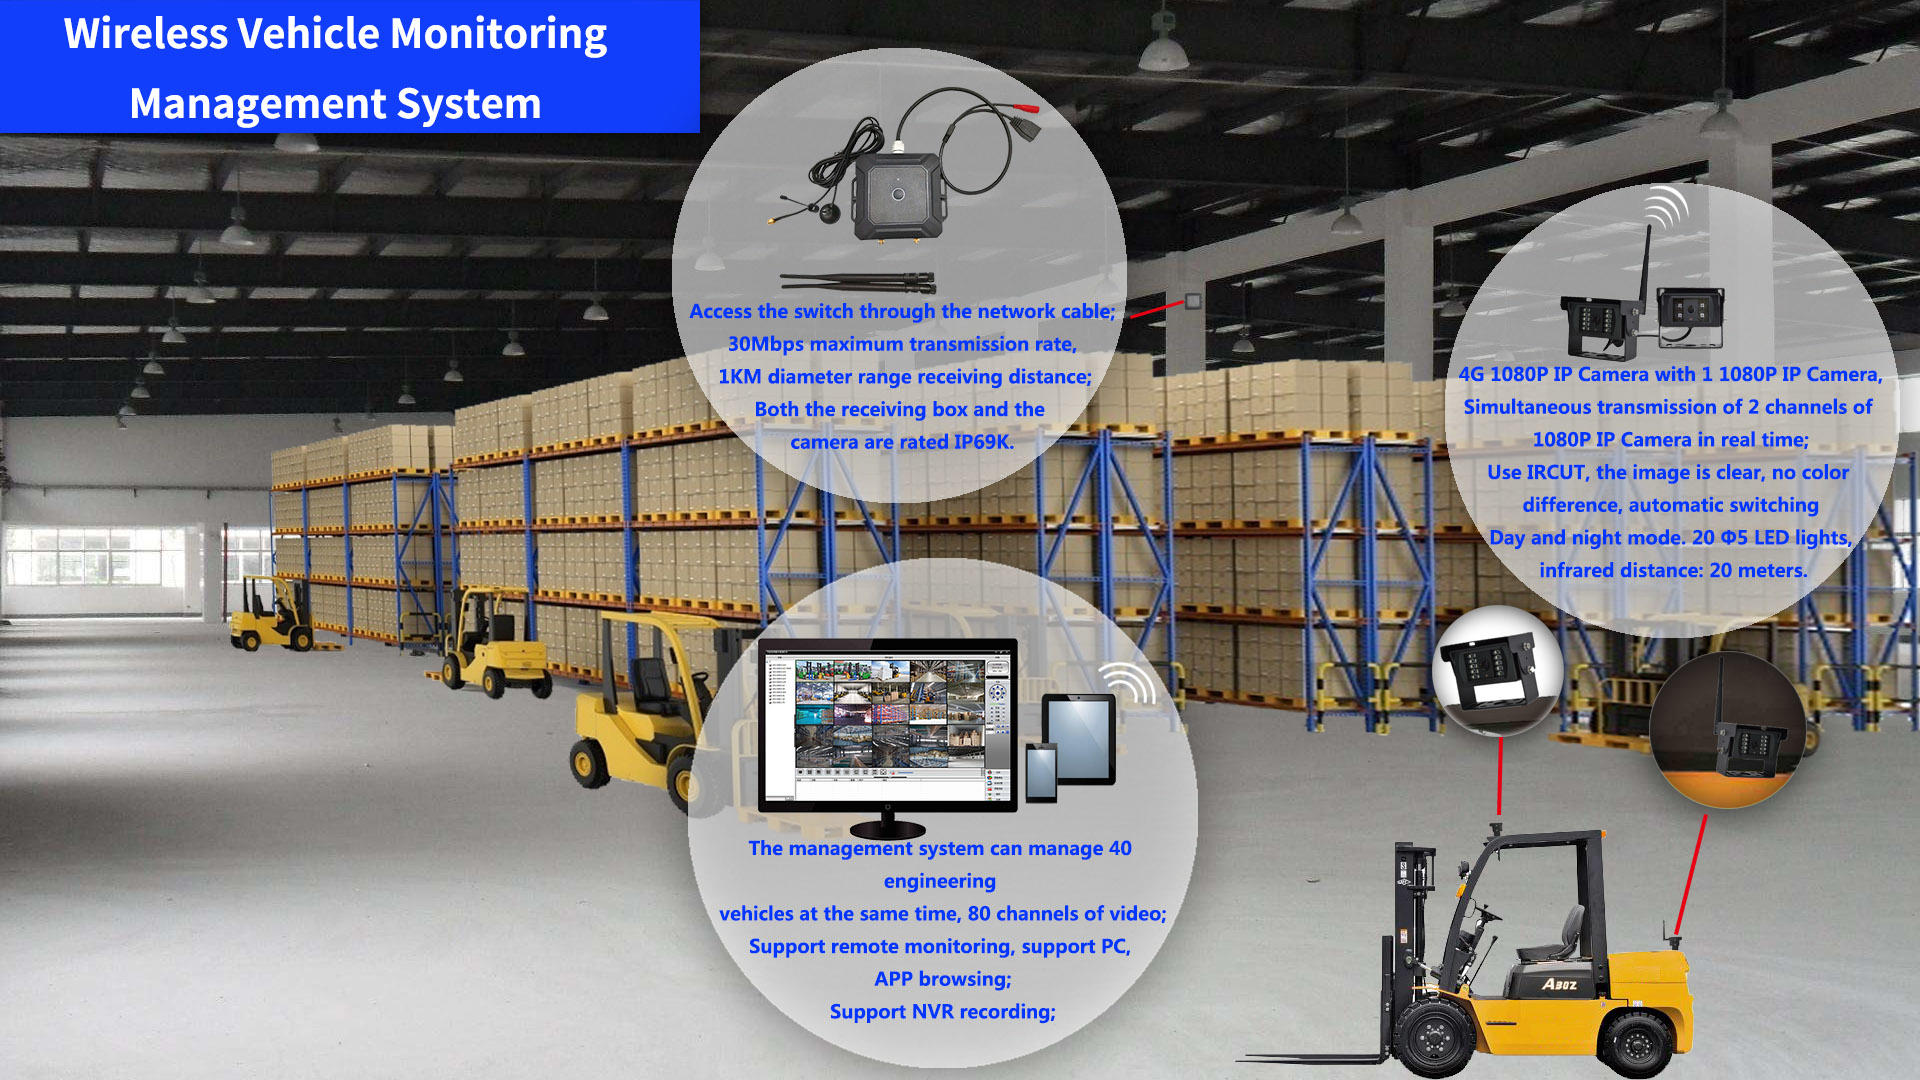 4G Wireless Vehicle Monitoring Management System